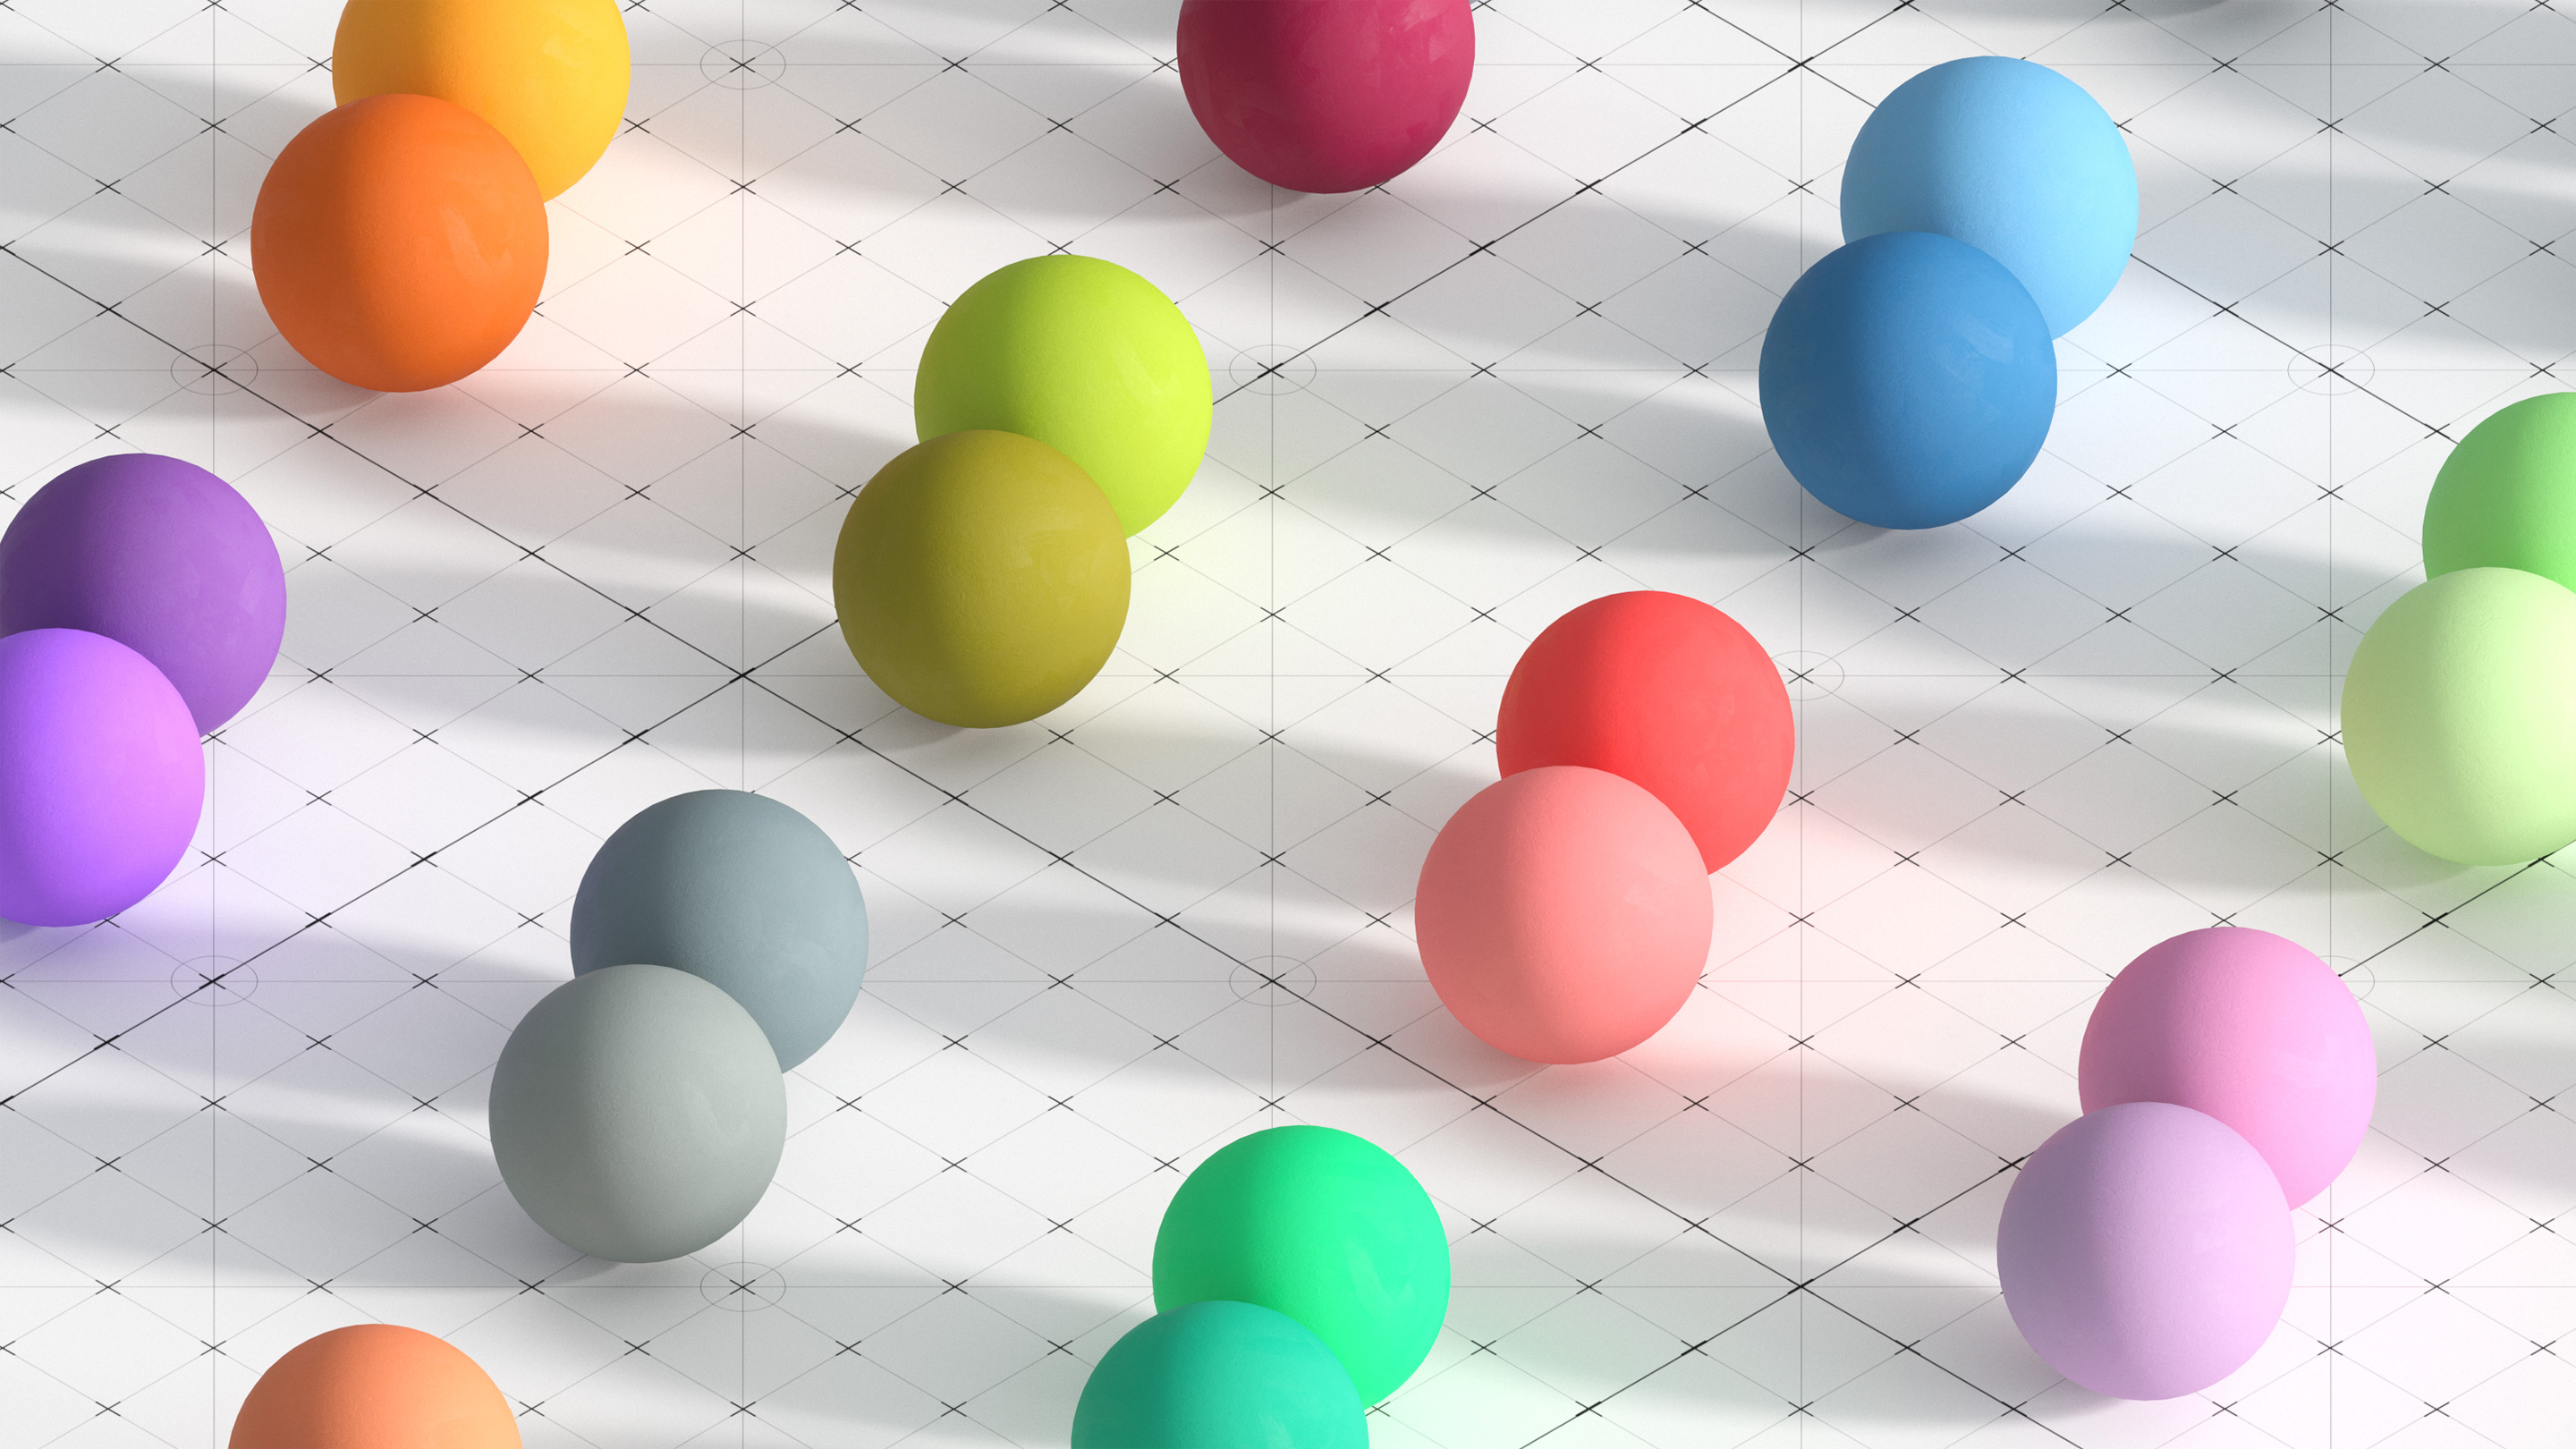 Colored spheres arranged in pairs.